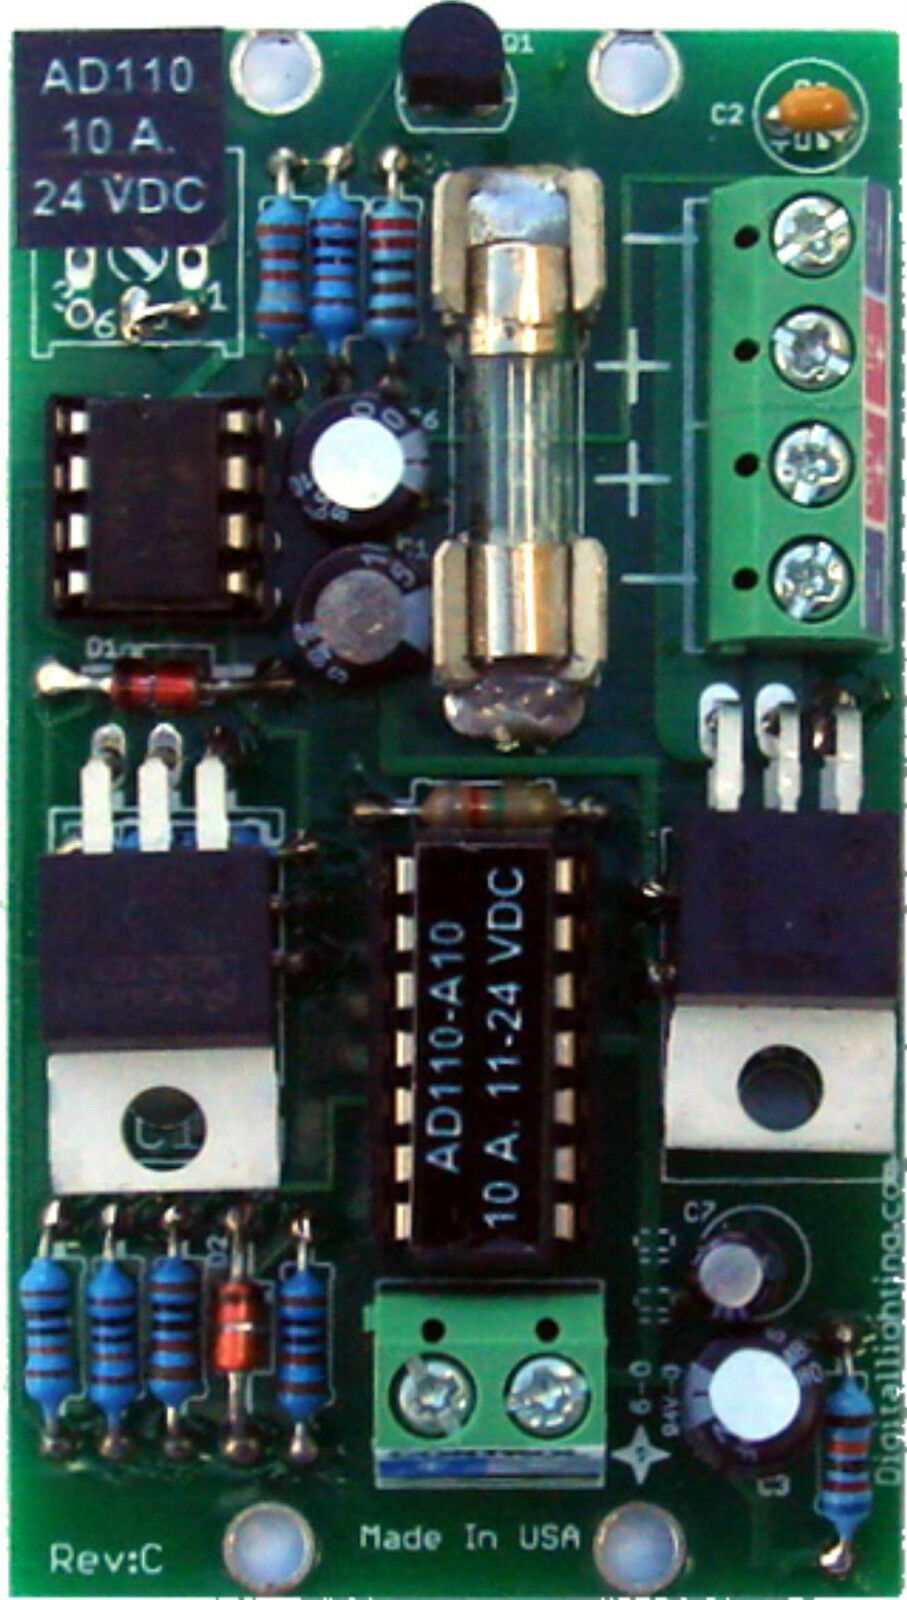 Ad110 A10 Led Dimmer Pwm 10 A12vdc 24 Vdc Pot Or 0 10v Control 010v Connection Diagram 1 Of 1only 5 Available